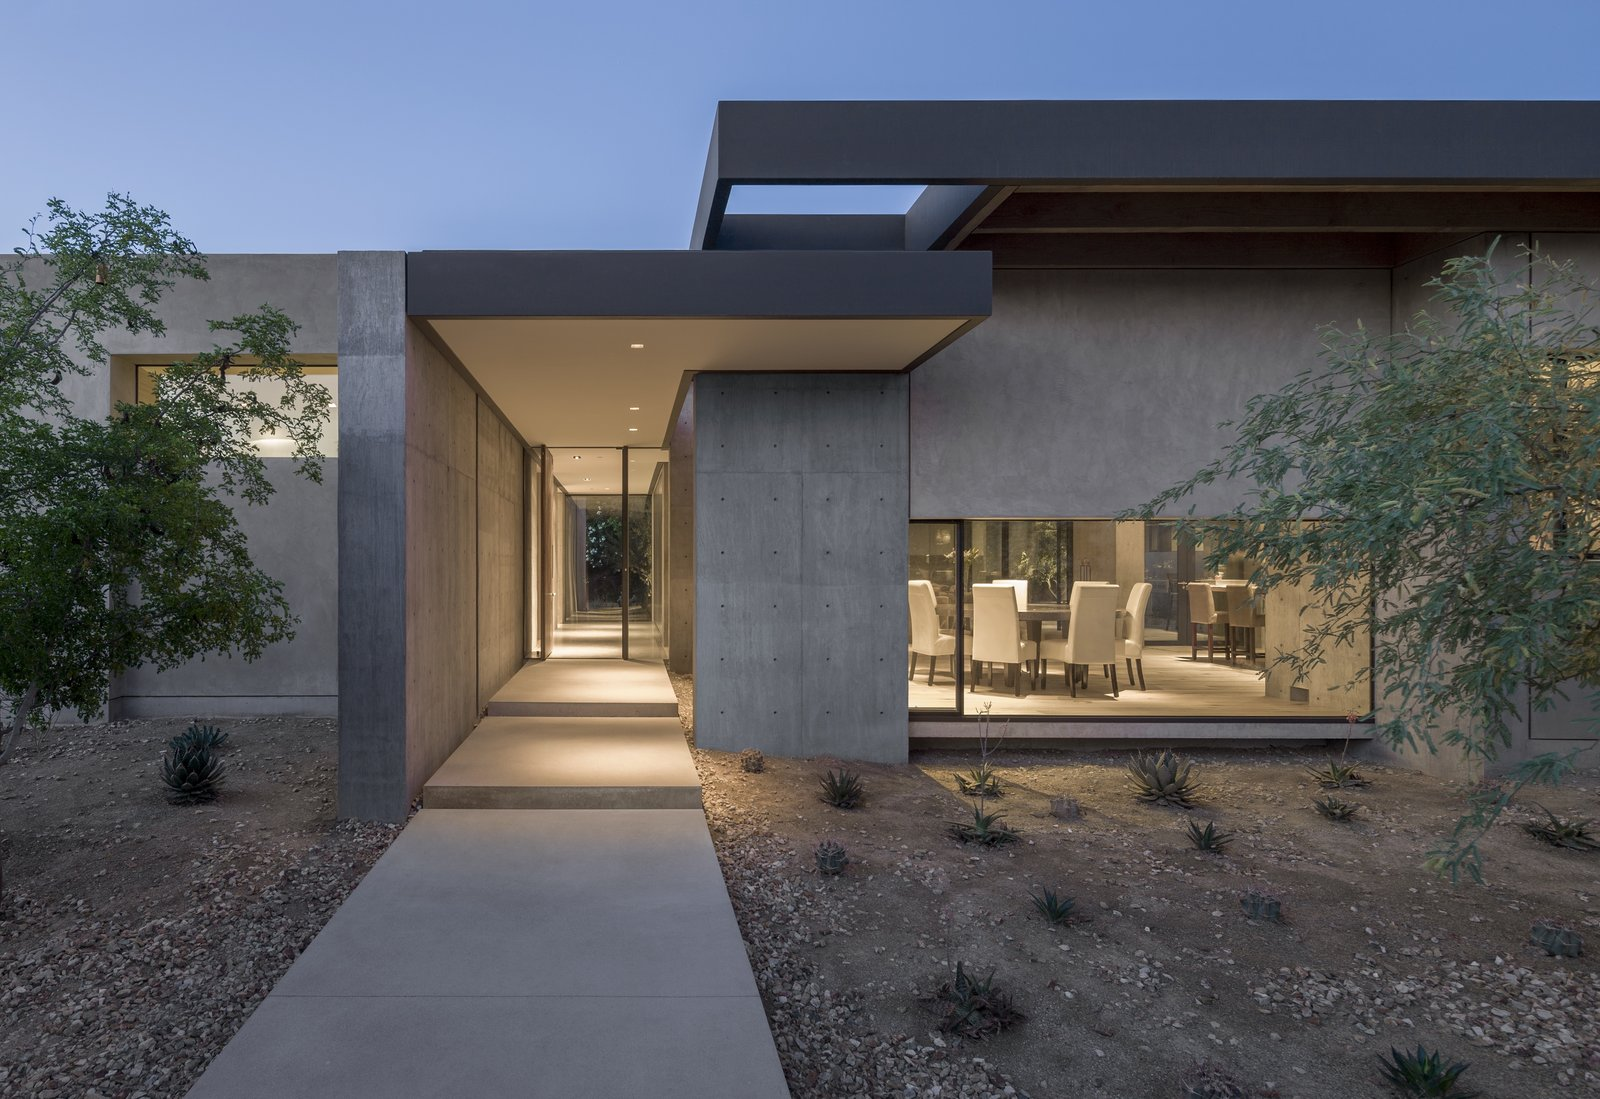 Outdoor, Side Yard, Trees, Pavers Patio, Porch, Deck, Shrubs, and Concrete Patio, Porch, Deck  DLL 59 by TENNEN   STUDIO